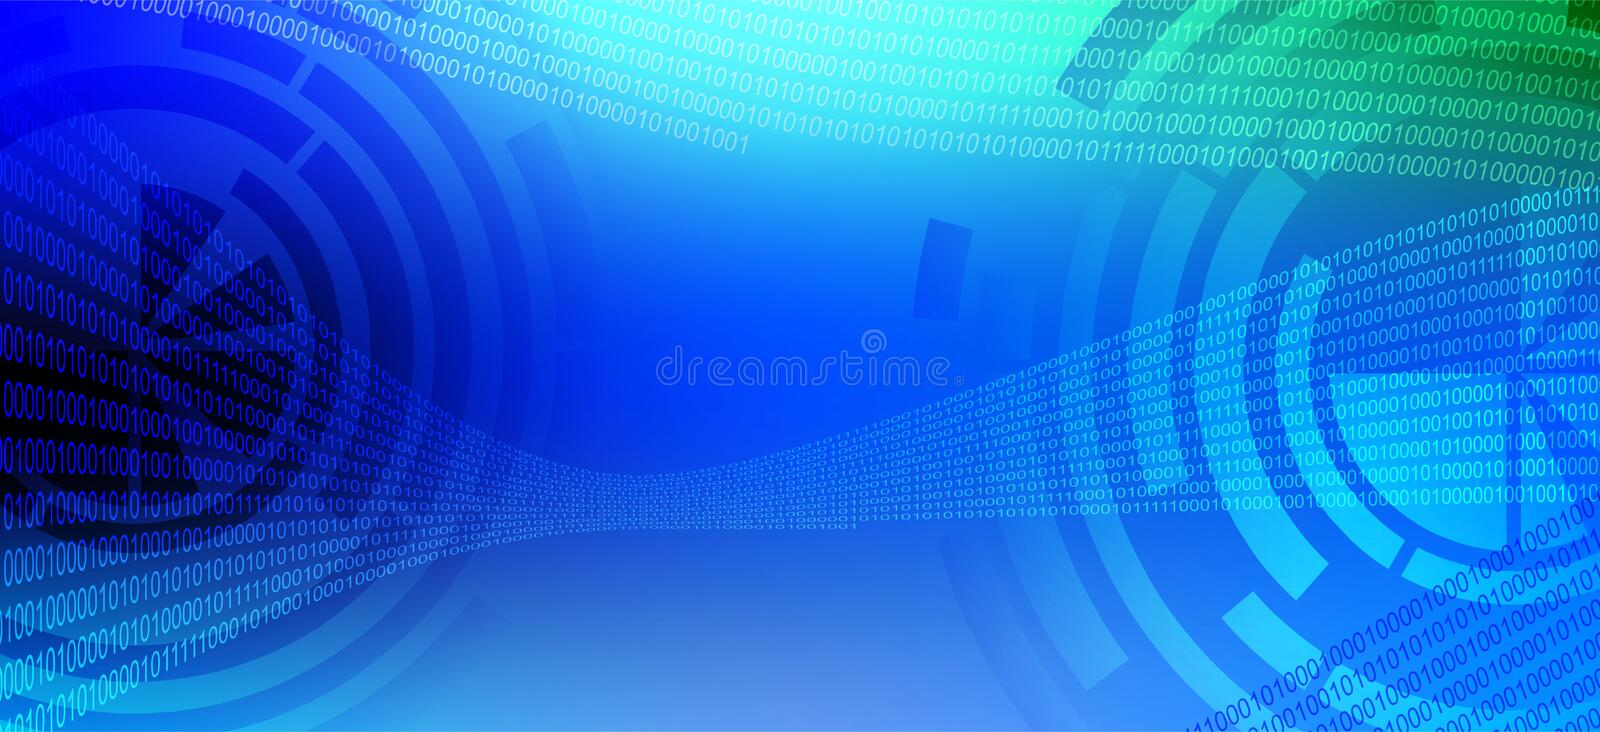 Blue and sky blue technology background.  stock illustration